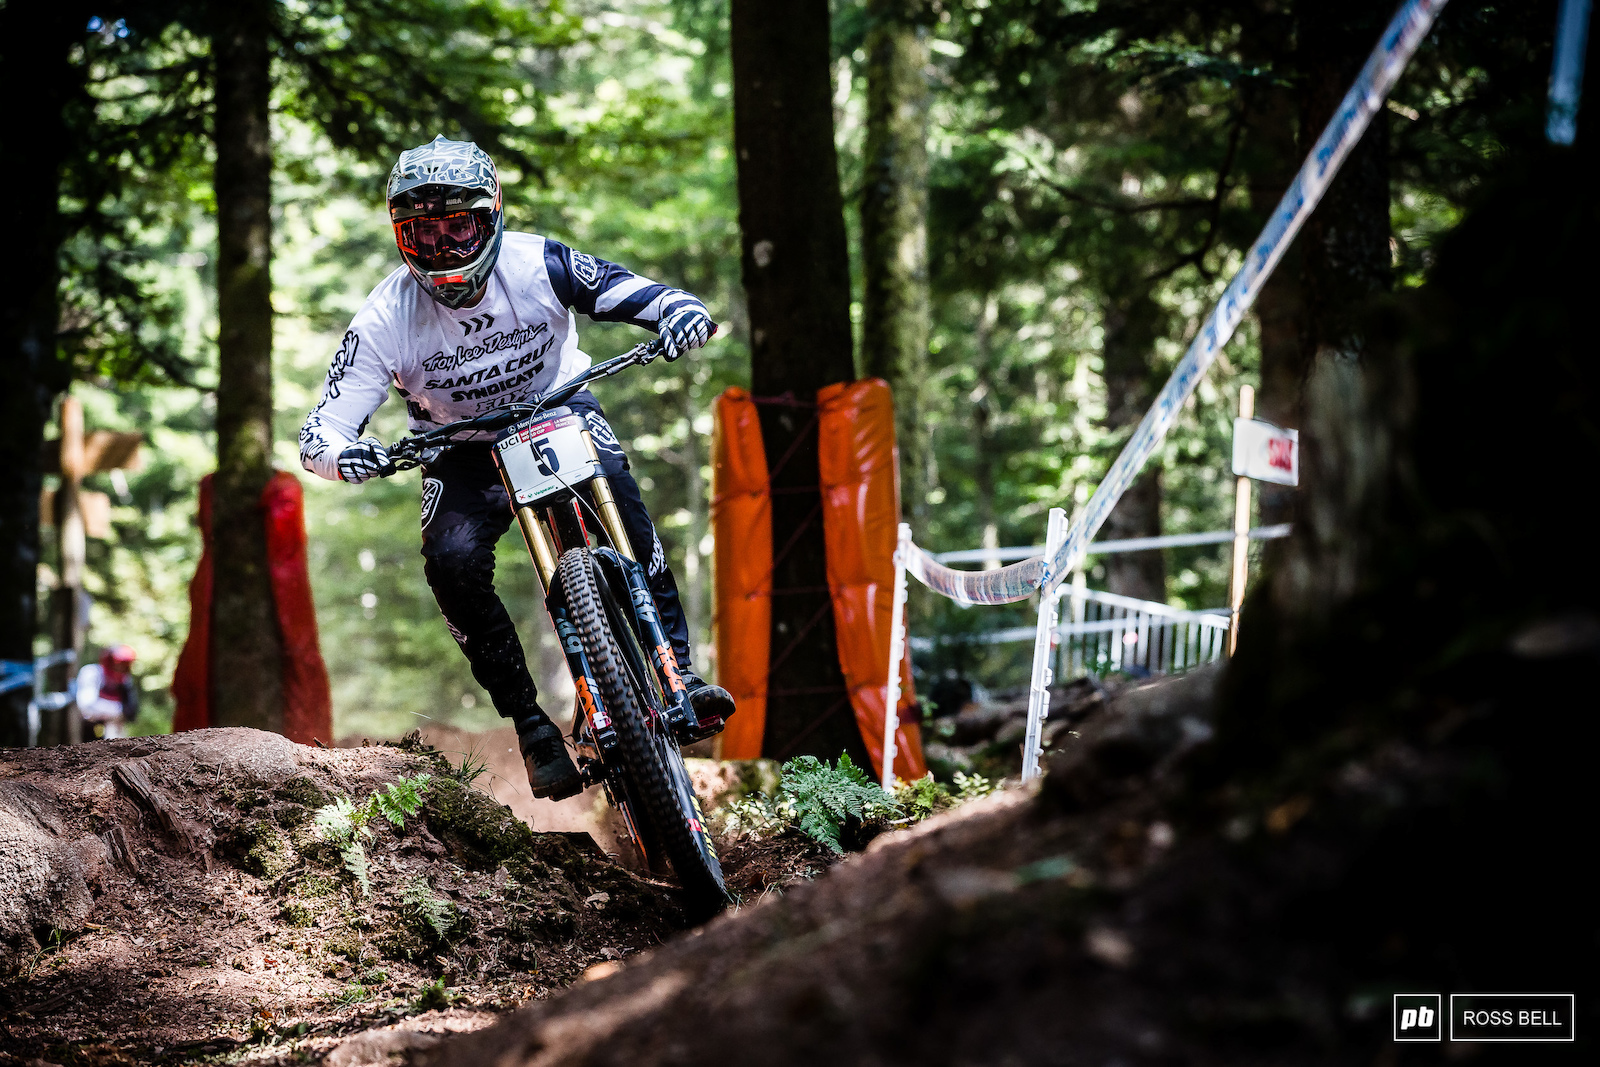 It s the last chance this season for Luca Shaw to take that World Cup win he s been challenging for all year...